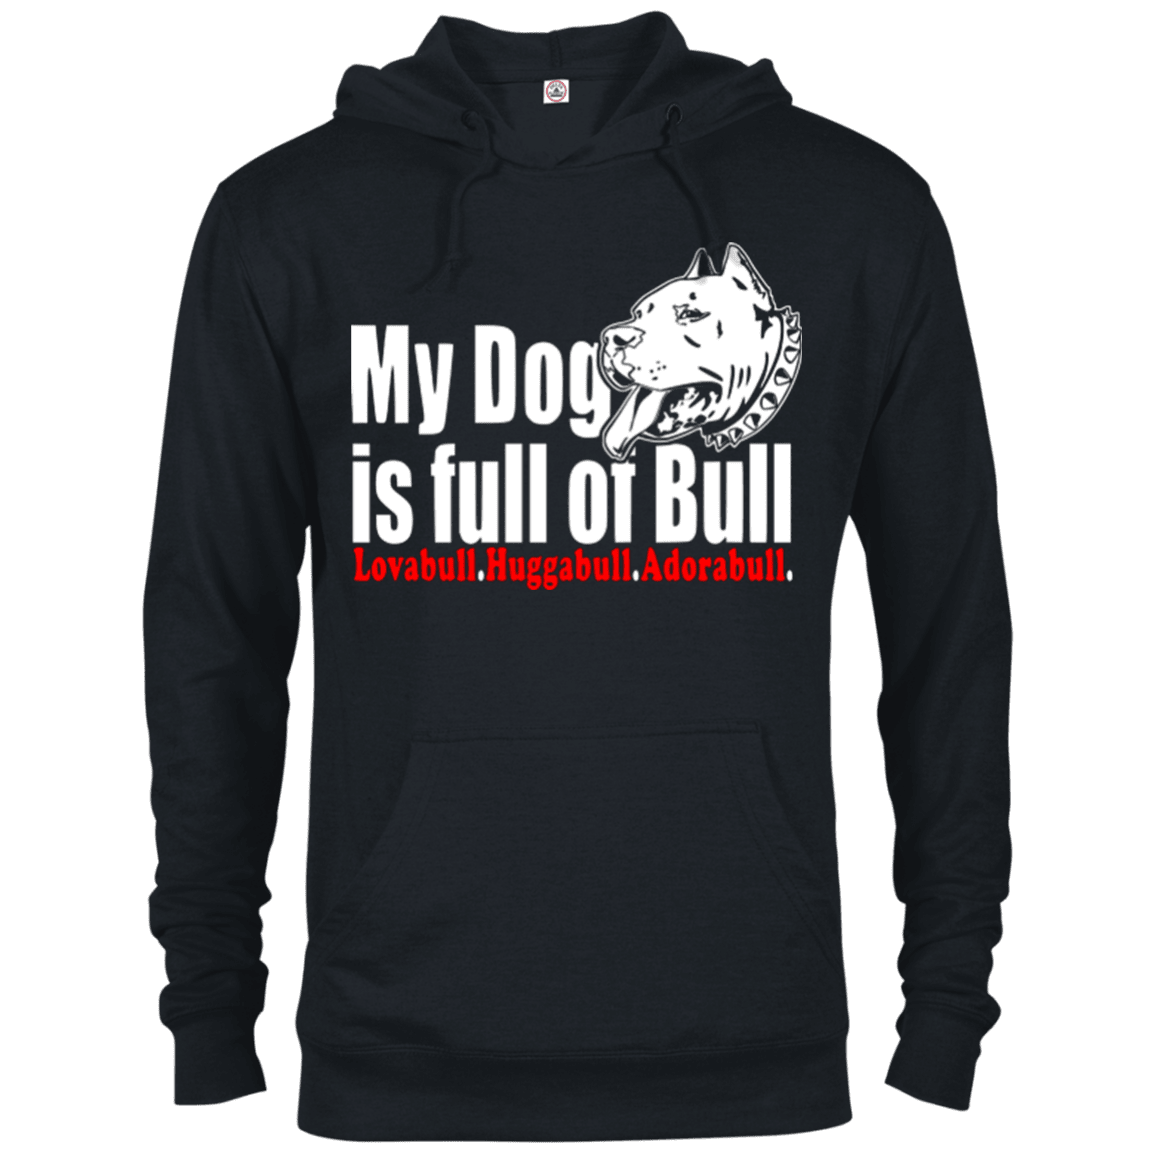 Full Of Bull - 97200 Delta French Terry Hoodie Dark Black X-Small - Little Pit Shop